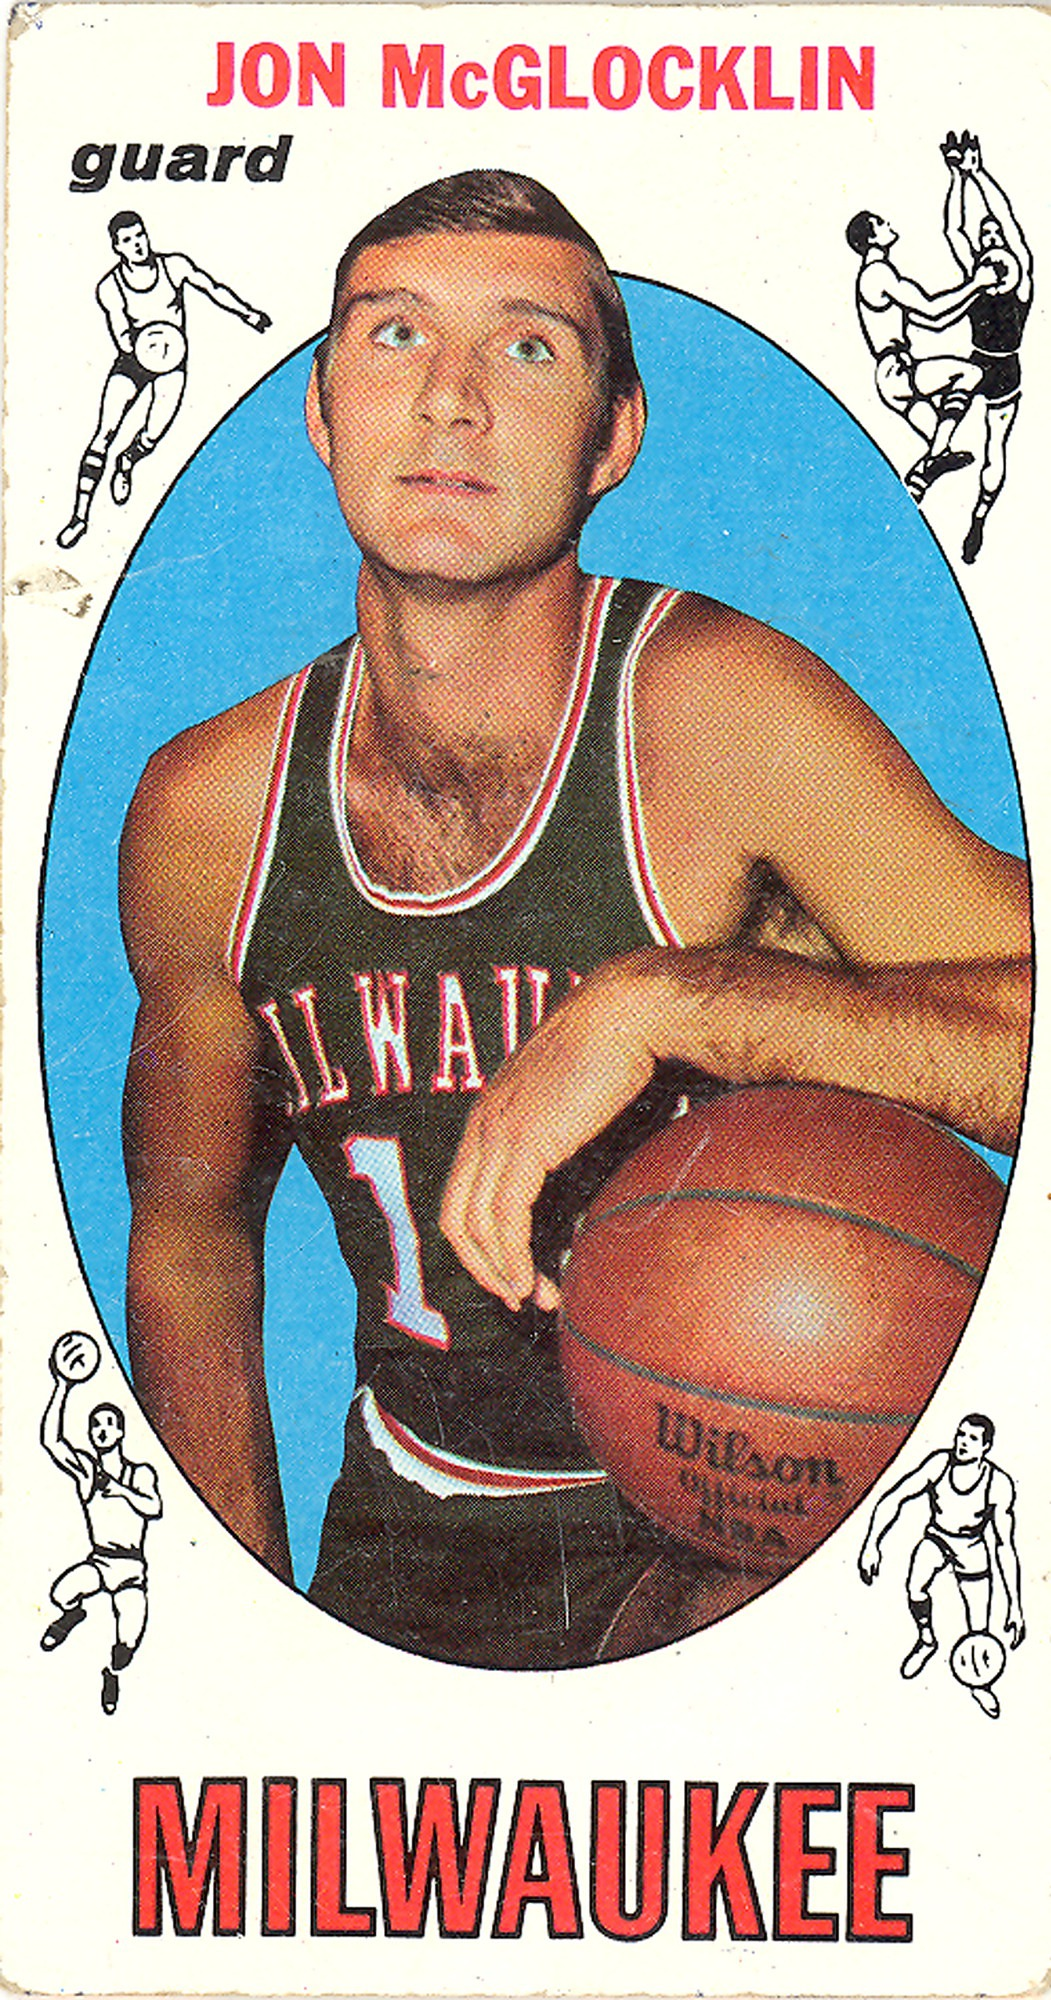 Jon McGlocklin Basketball Card